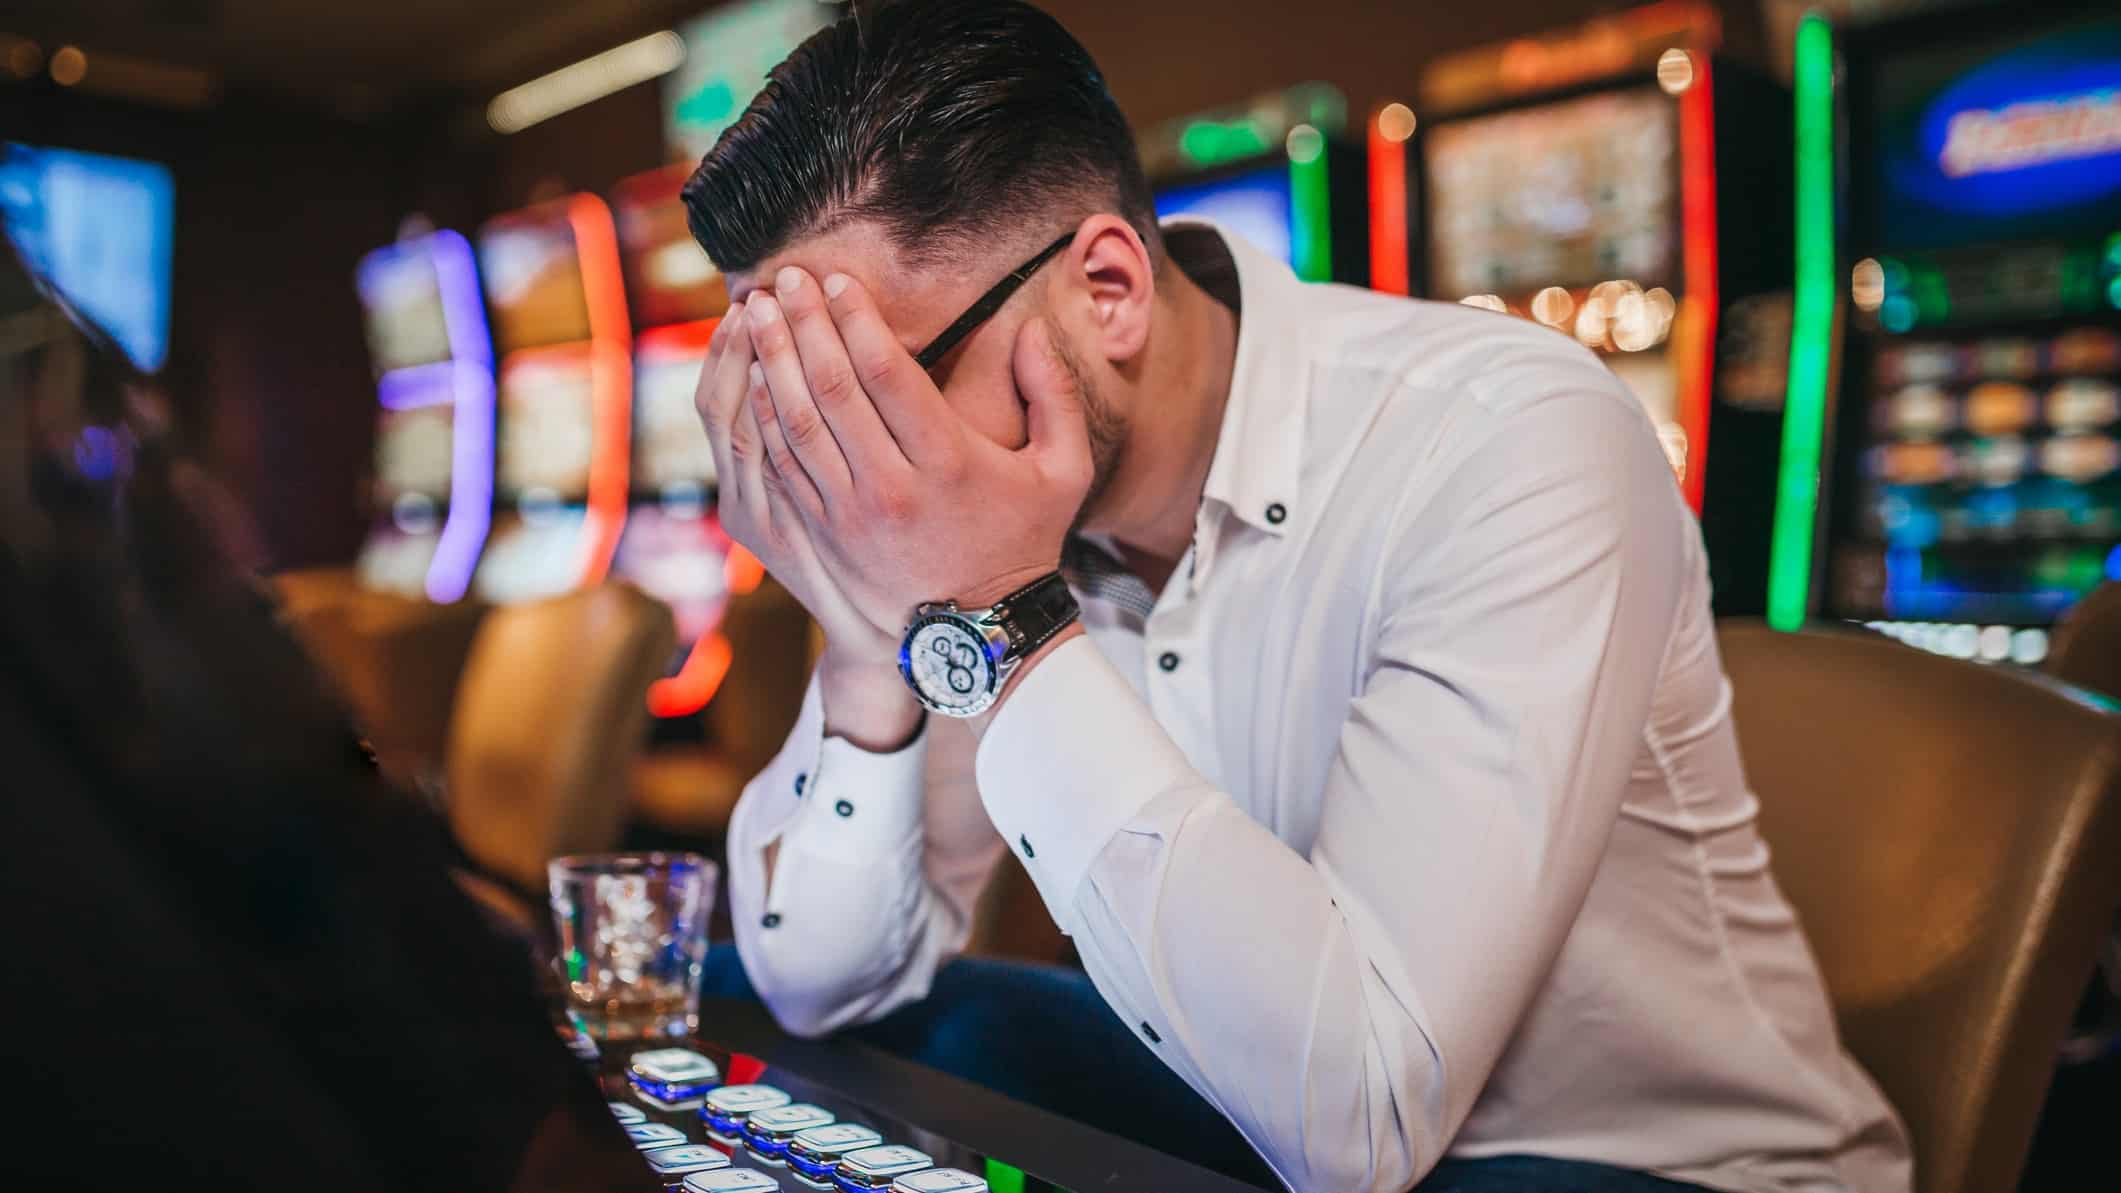 Distressed man at a casino